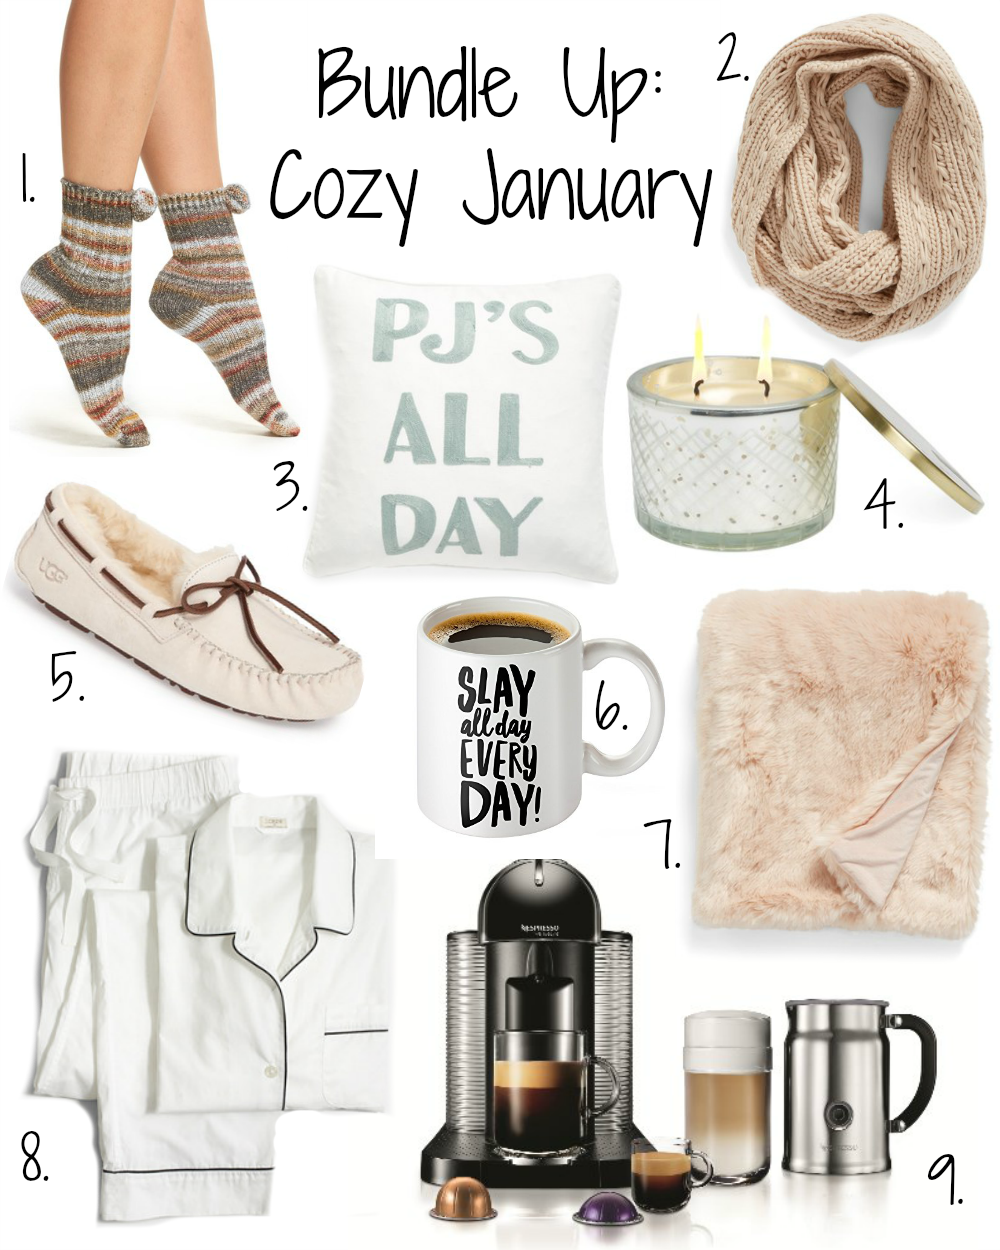 Bundle Up: Cozy January